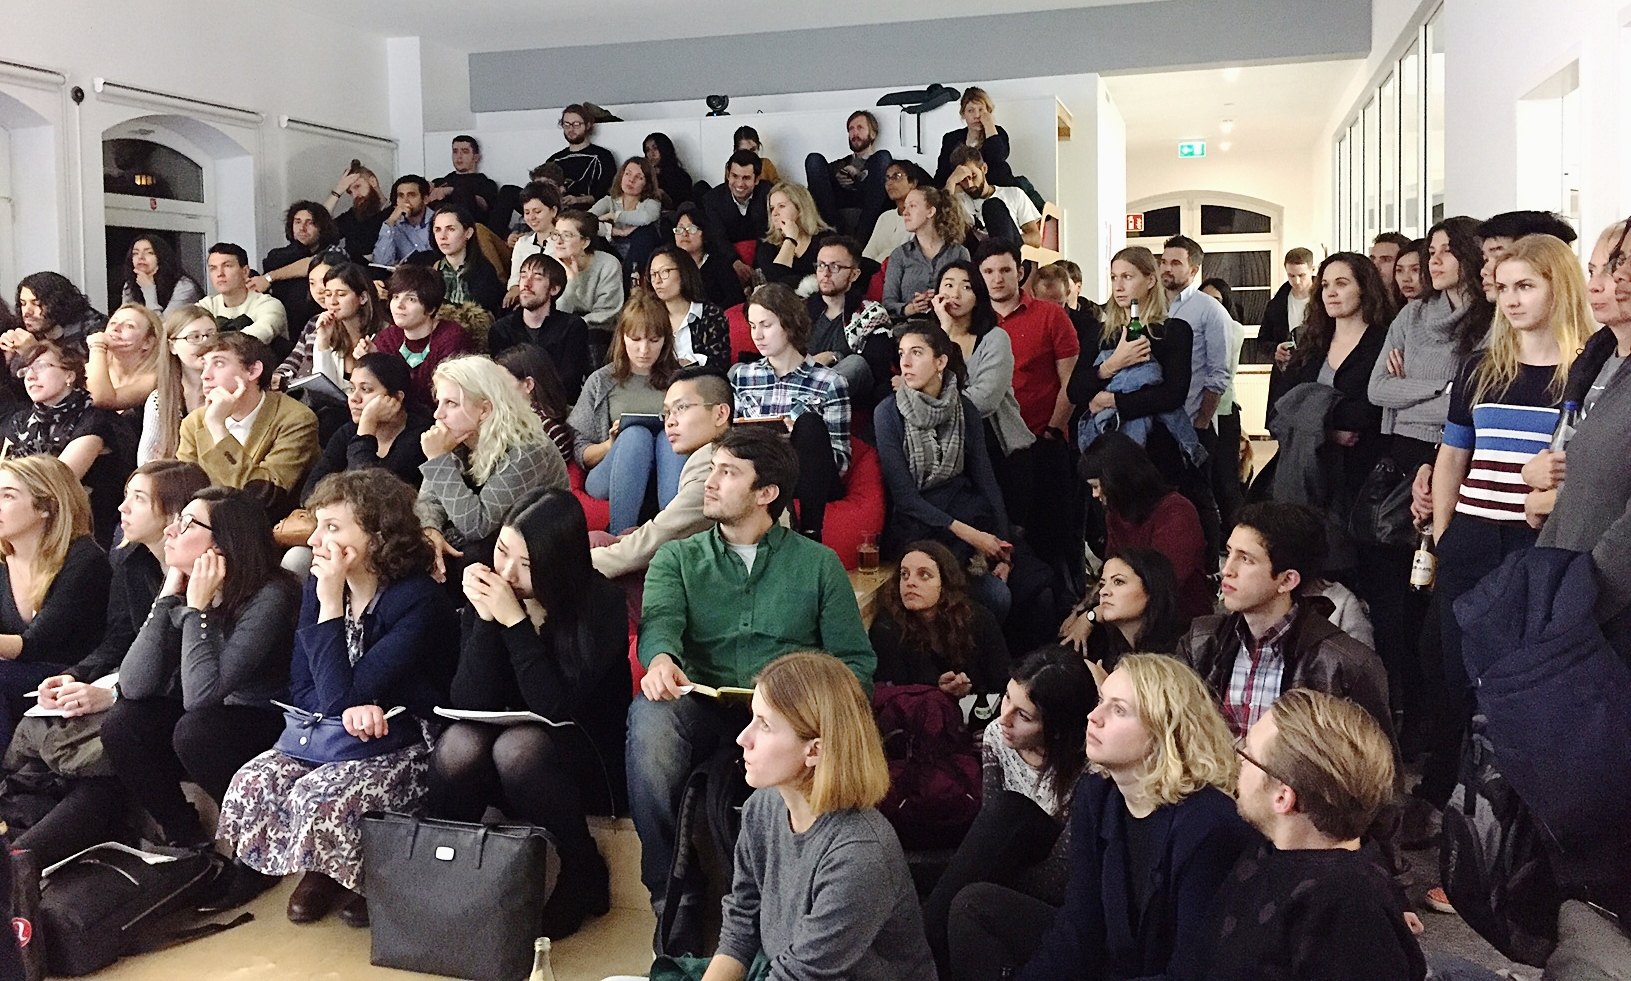 Over 90 Berlin-based Job Seekers gathered in our Update Area!